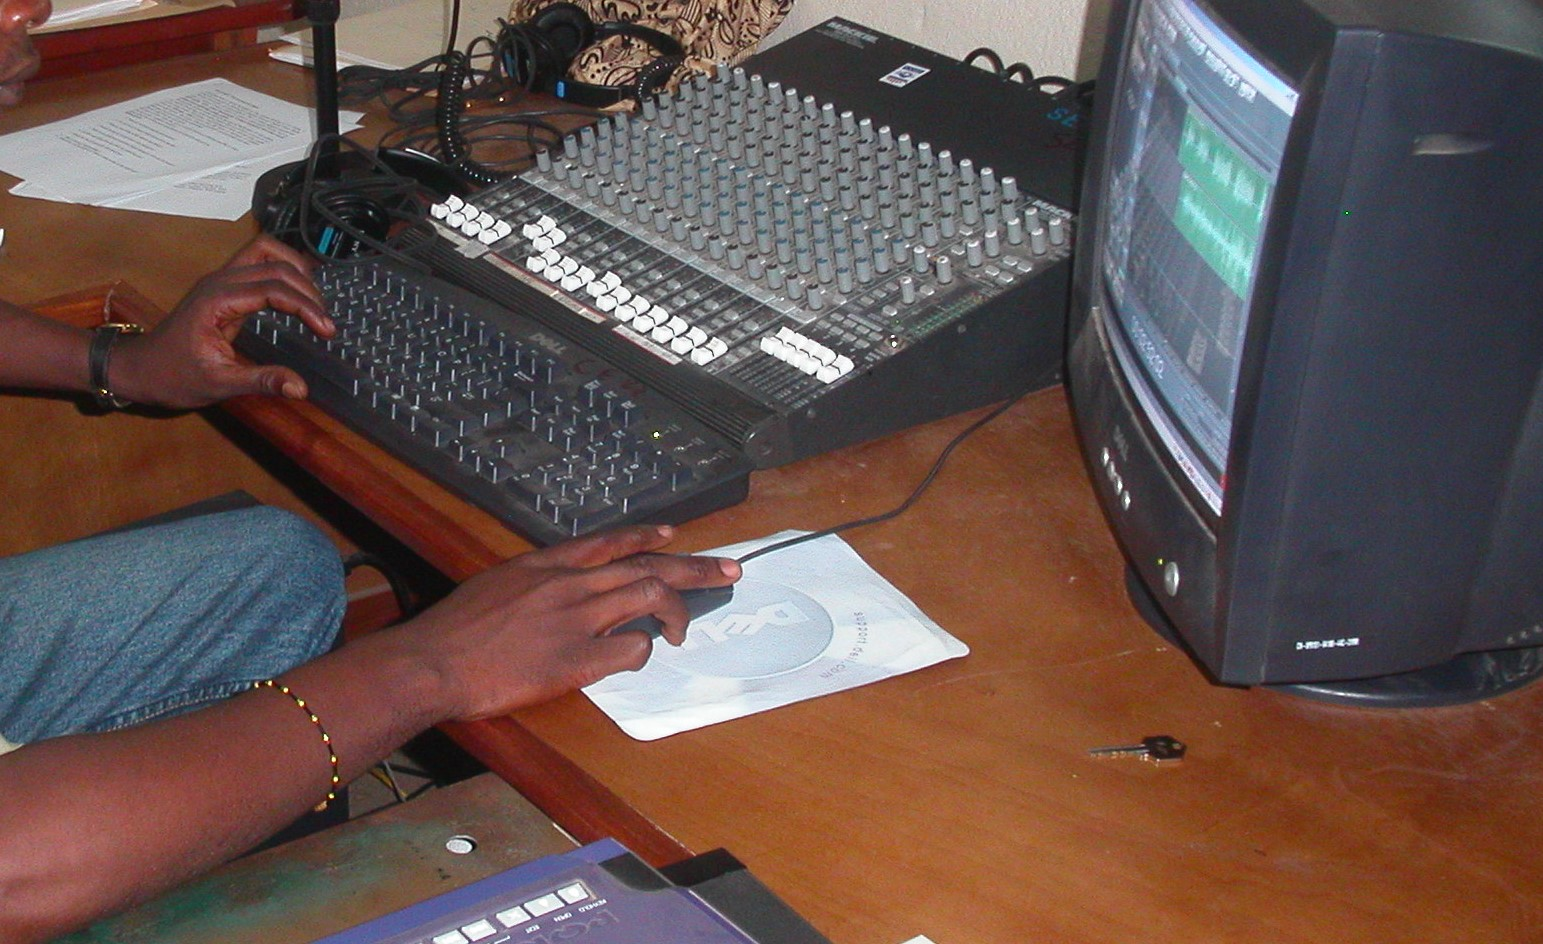 Introduction to Radio Talkshows for Peacebuilding